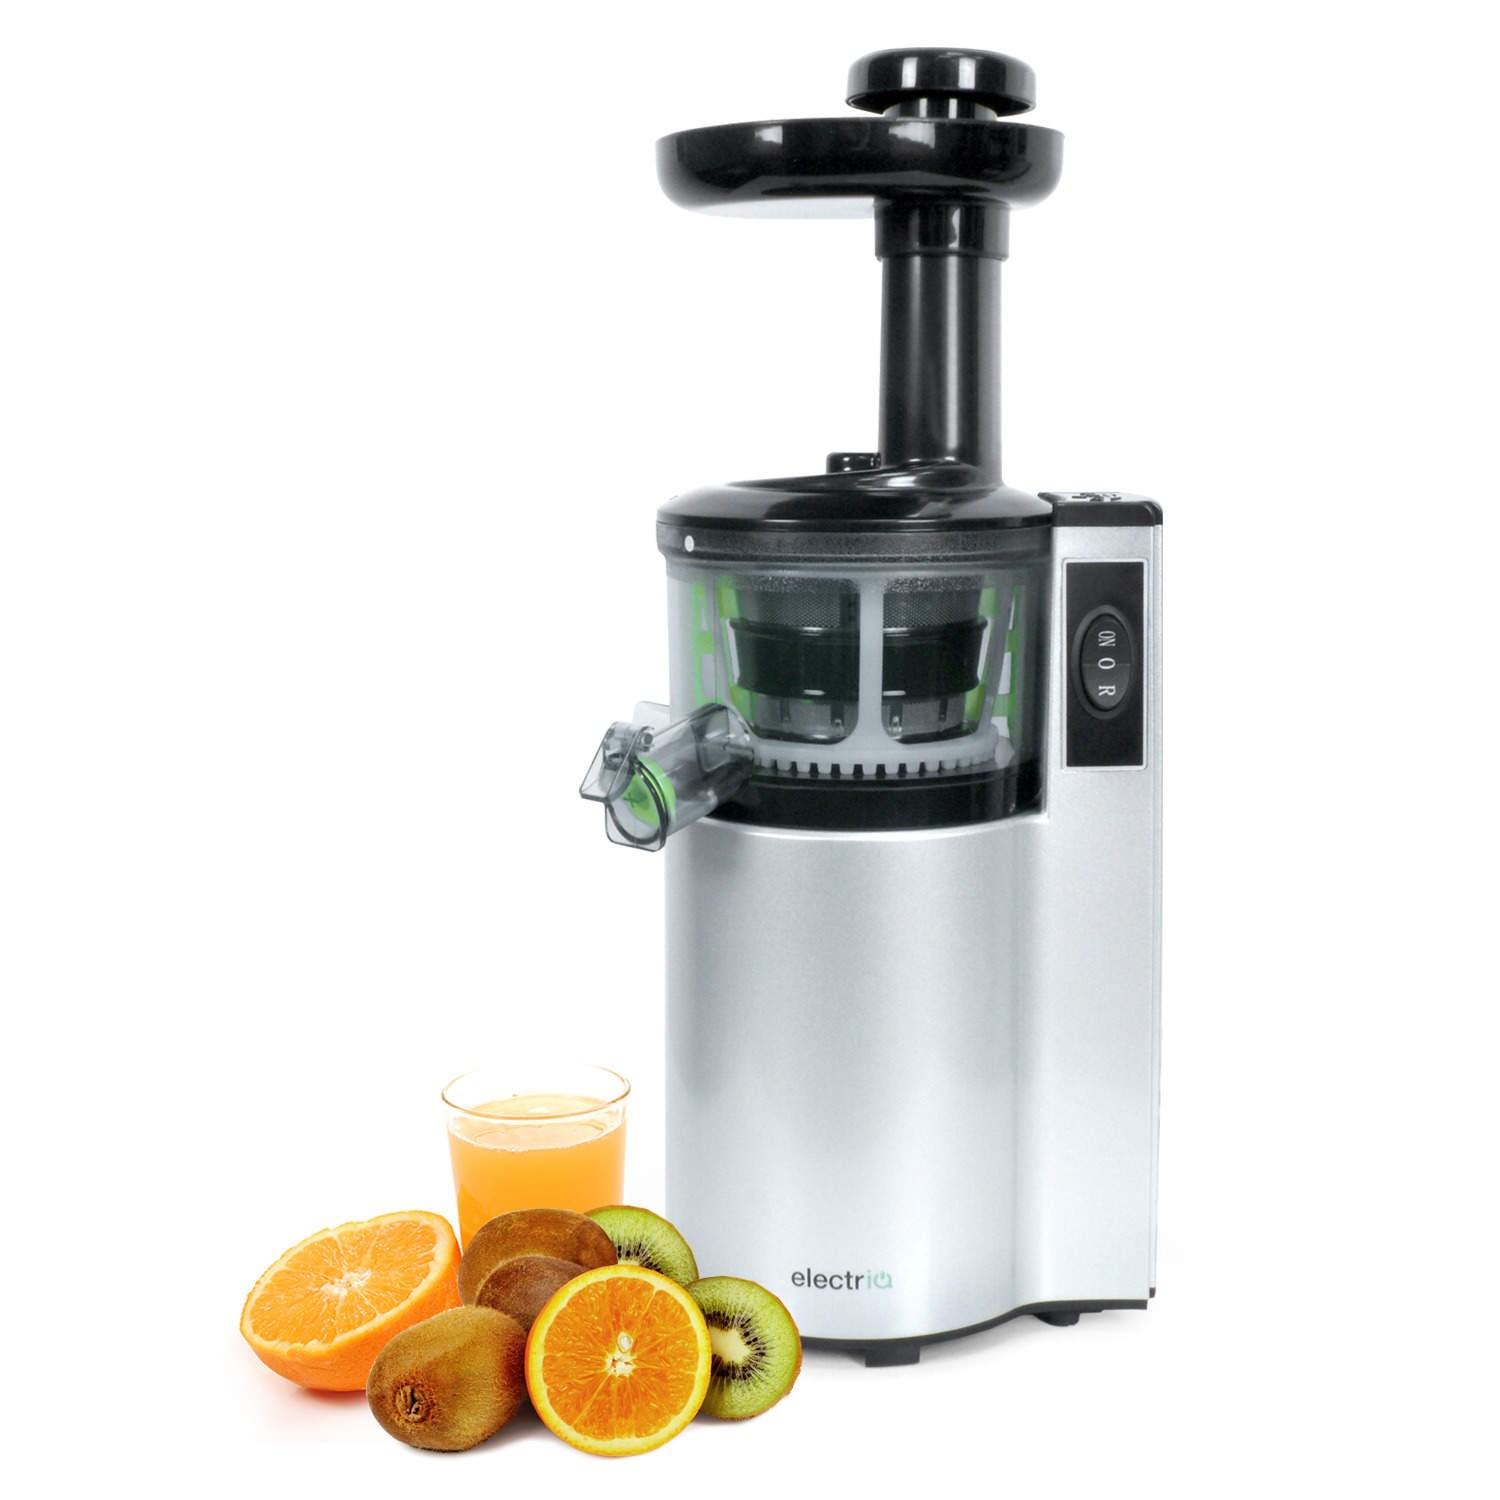 Best Slow Extraction Juicer : ElectriQ vertical Slow Masticating Juicer Fruit vegetable Juice Extractor eBay